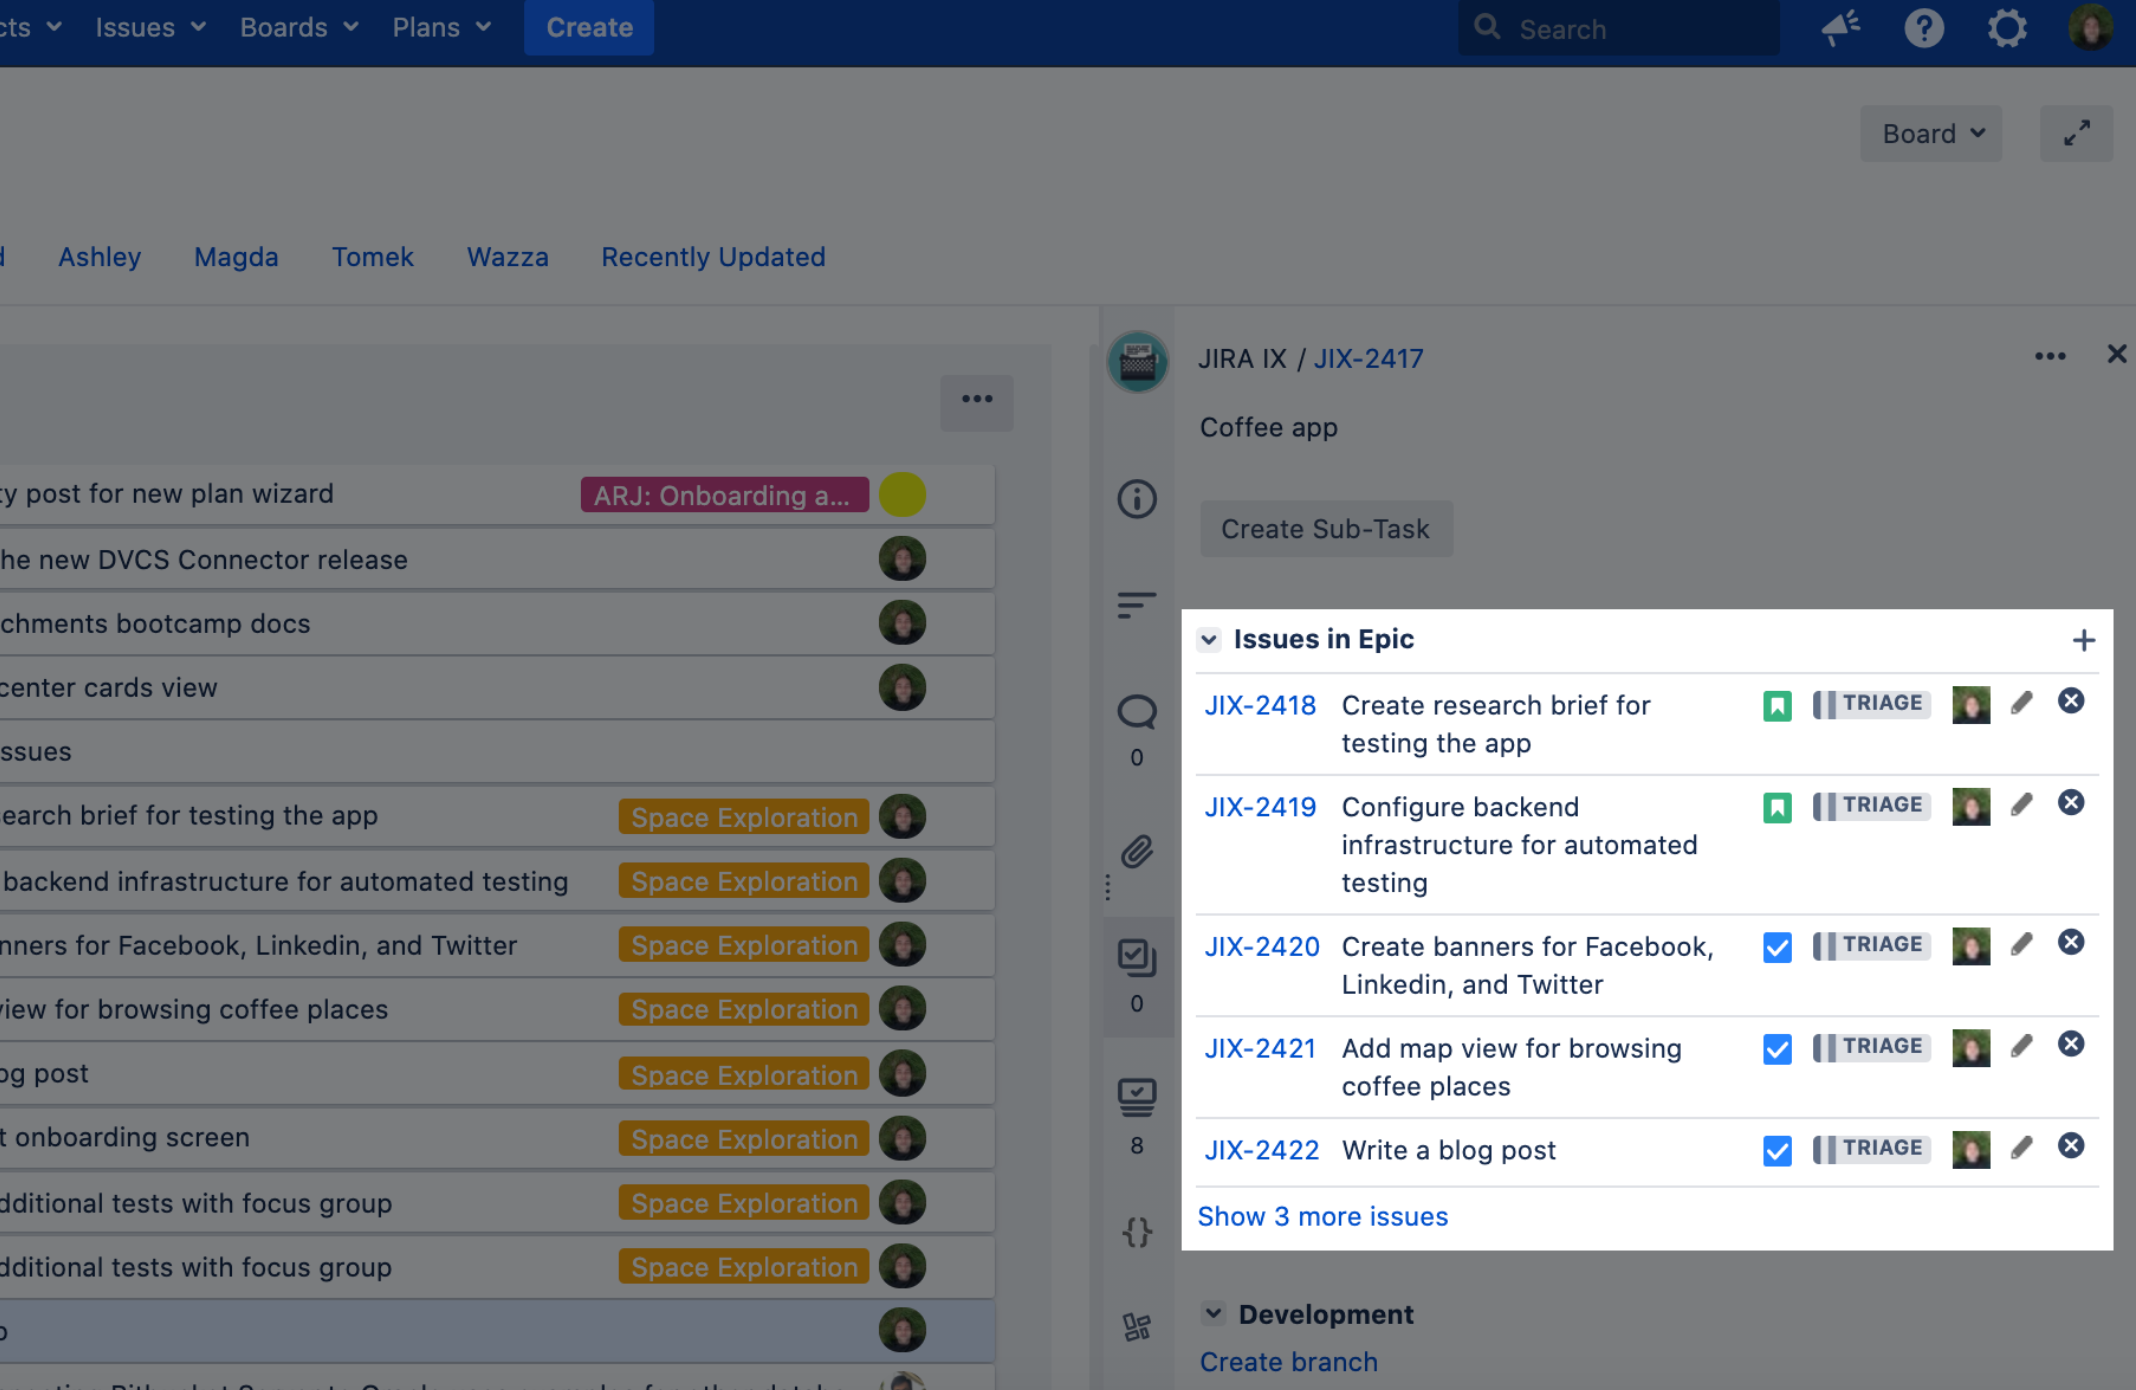 Jira Issues in Epic